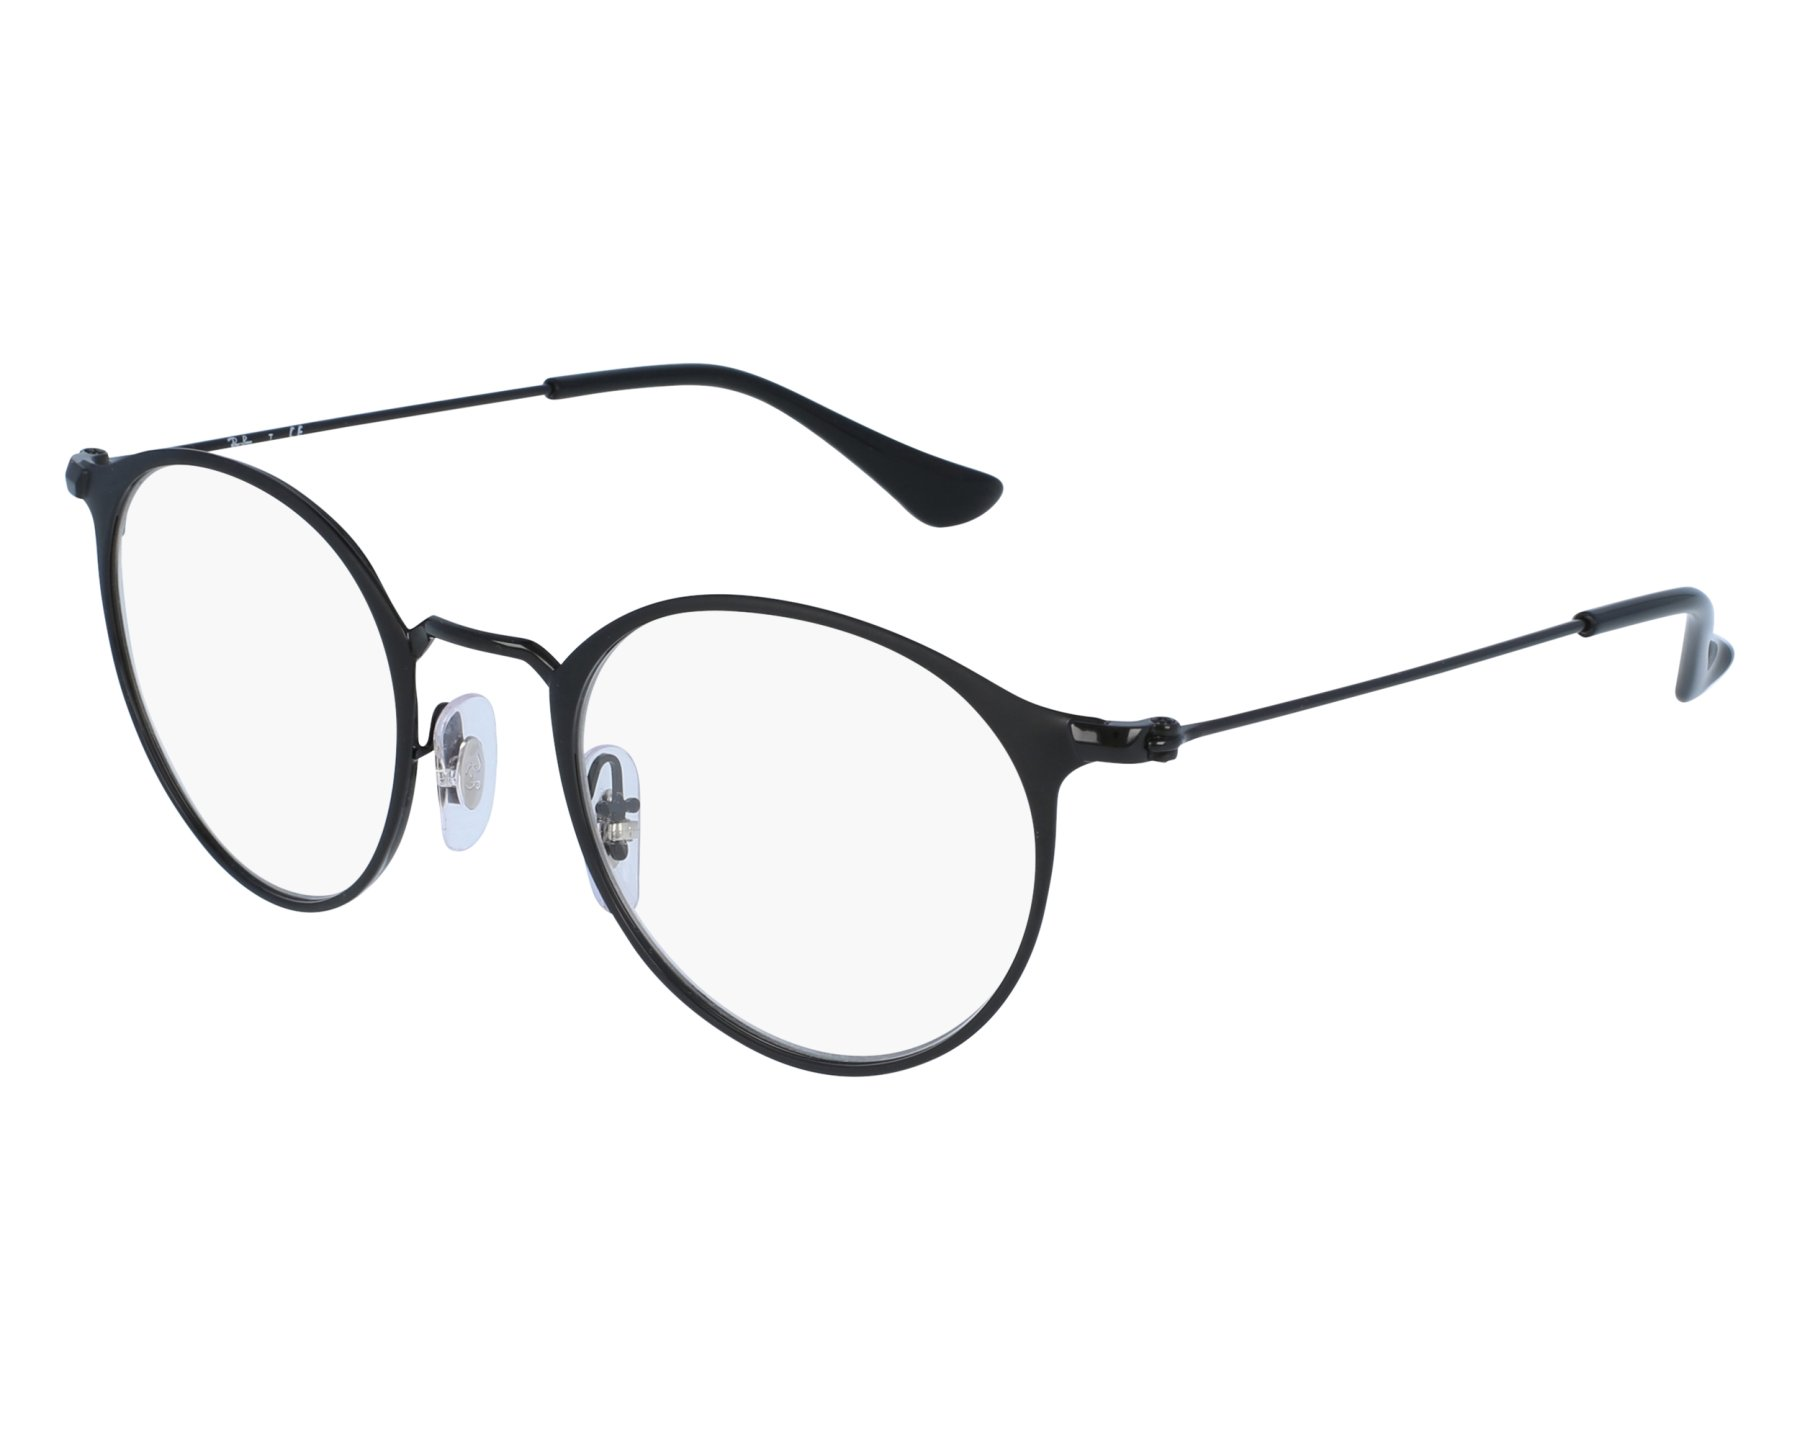 69be8f0a4cd7b eyeglasses Ray-Ban RX-6378 2904 47-21 Black front view